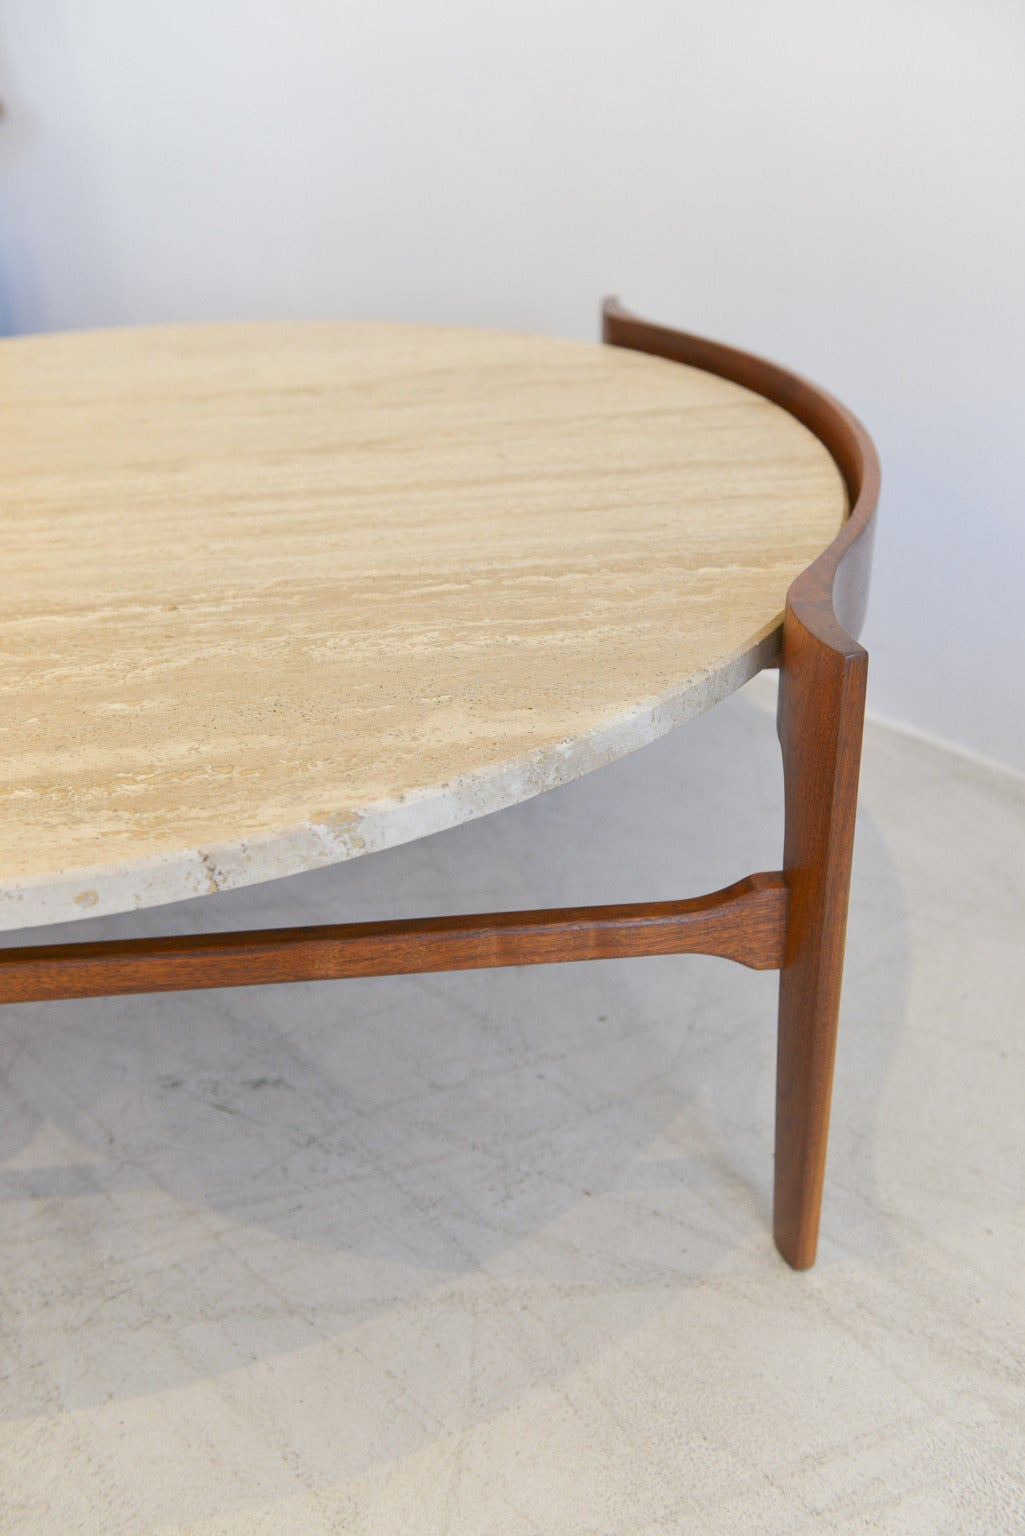 American Travertine and Sculptural Walnut Coffee Table